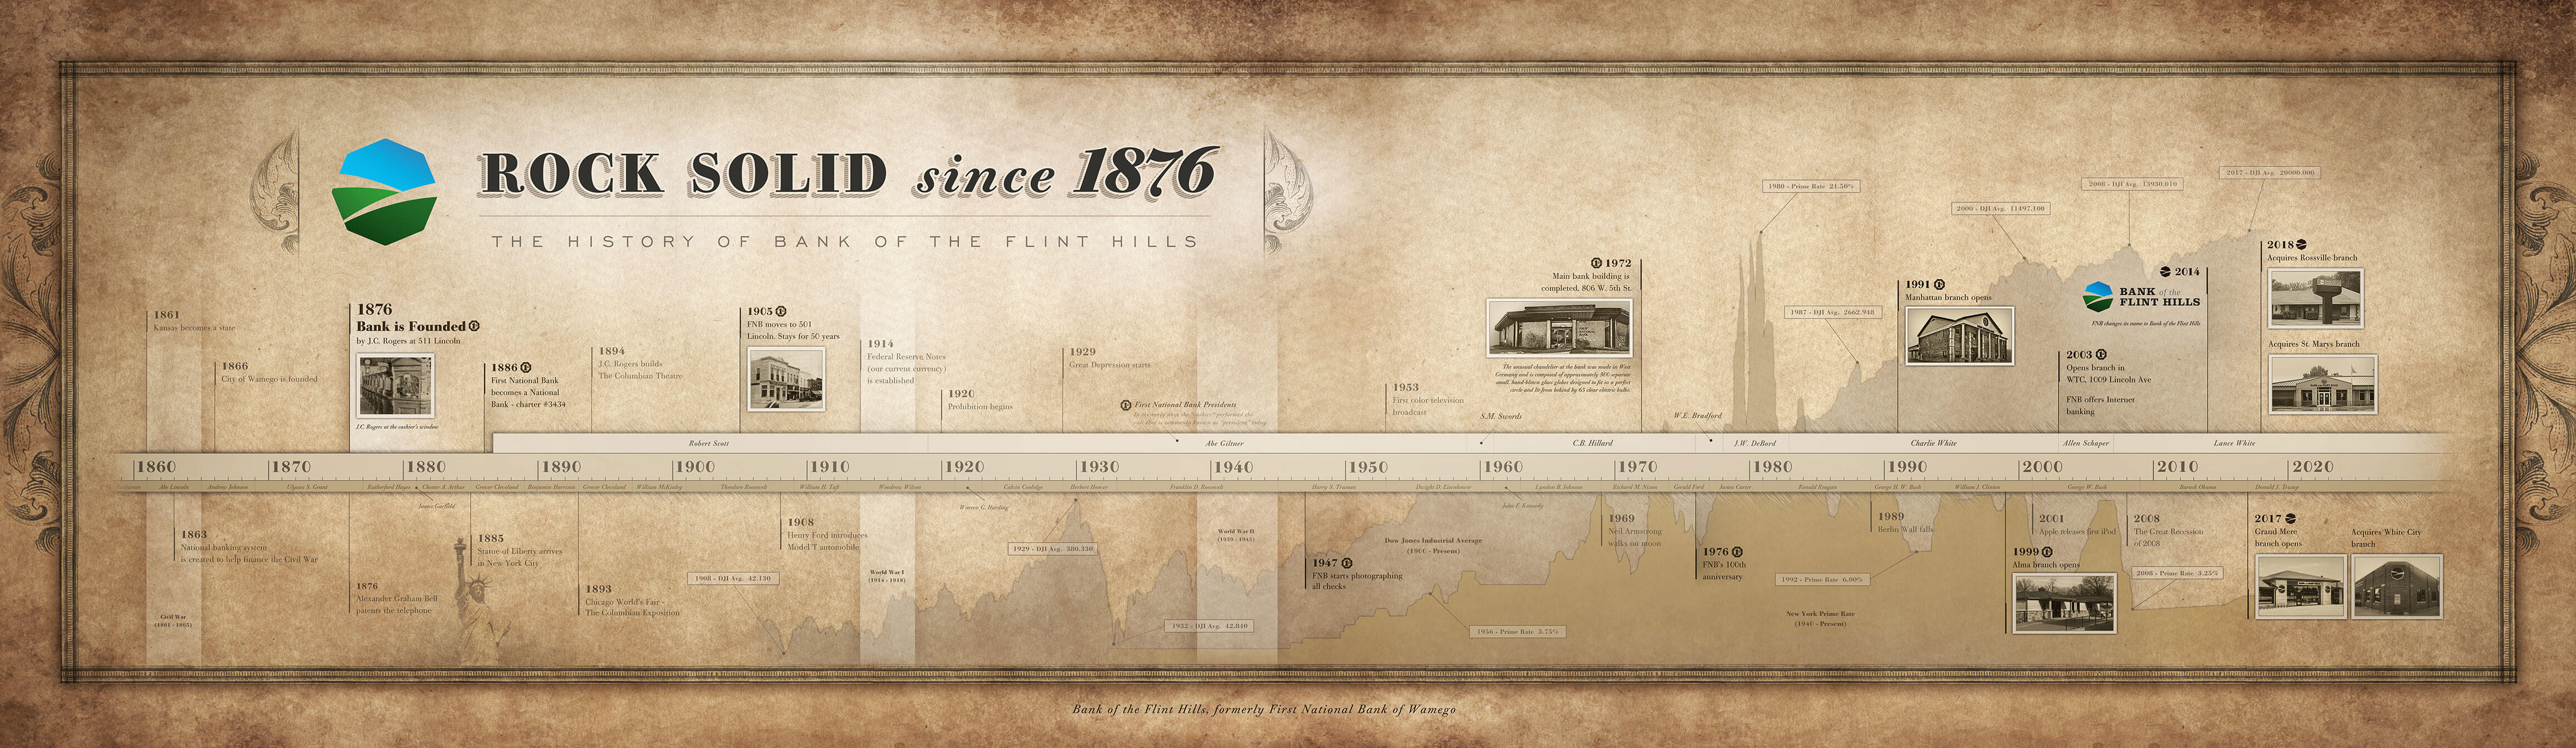 Bank of the Flint Hills Timeline